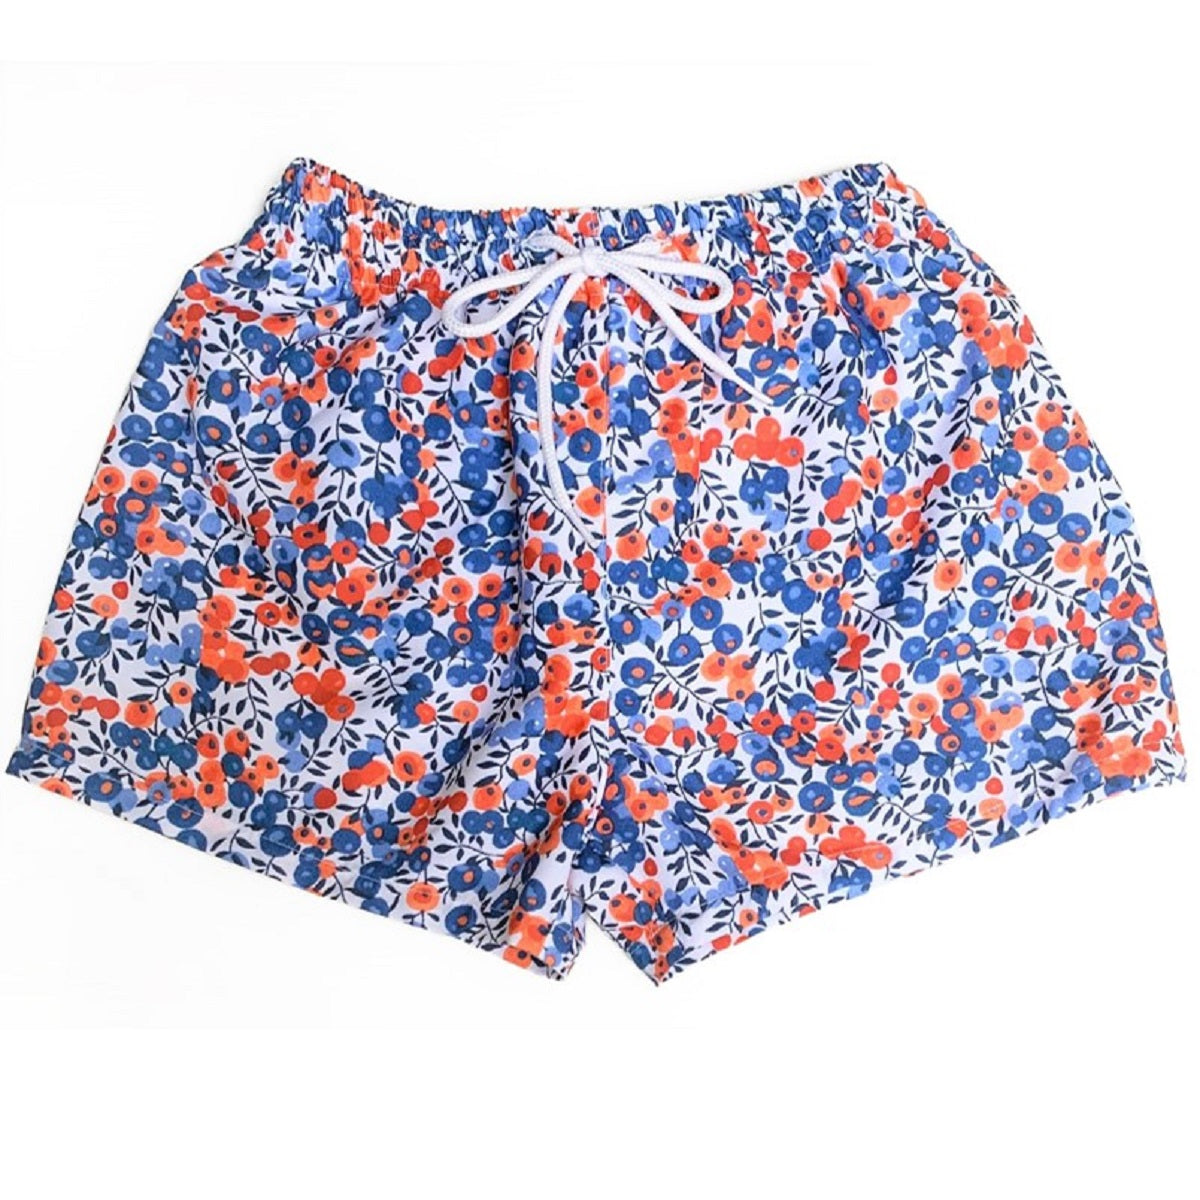 Liberty Swim Short